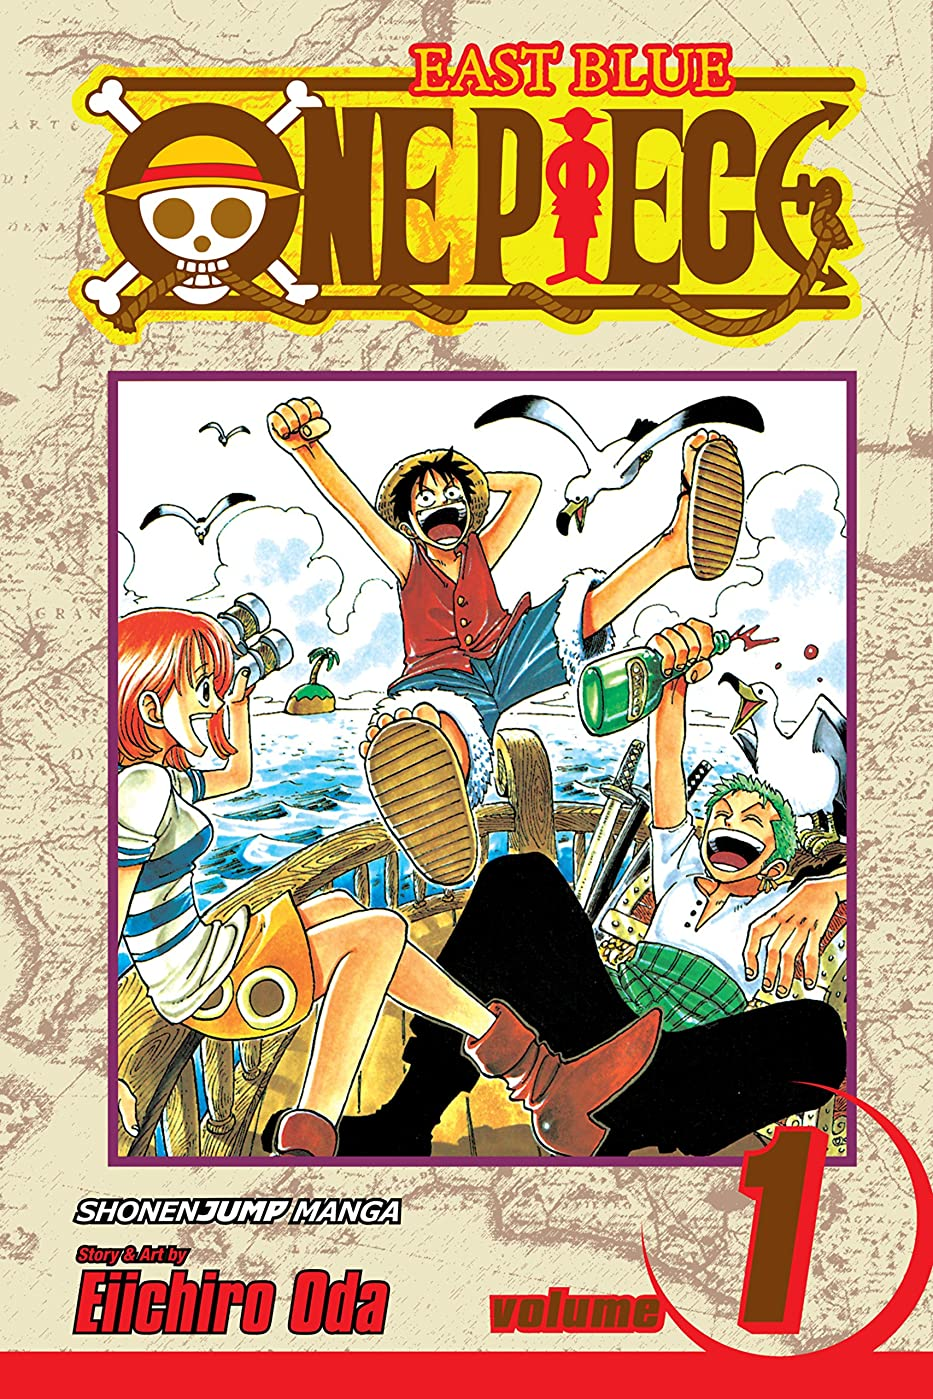 真鍮めまいがドキュメンタリーOne Piece, Vol. 1: Romance Dawn (One Piece Graphic Novel) (English Edition)